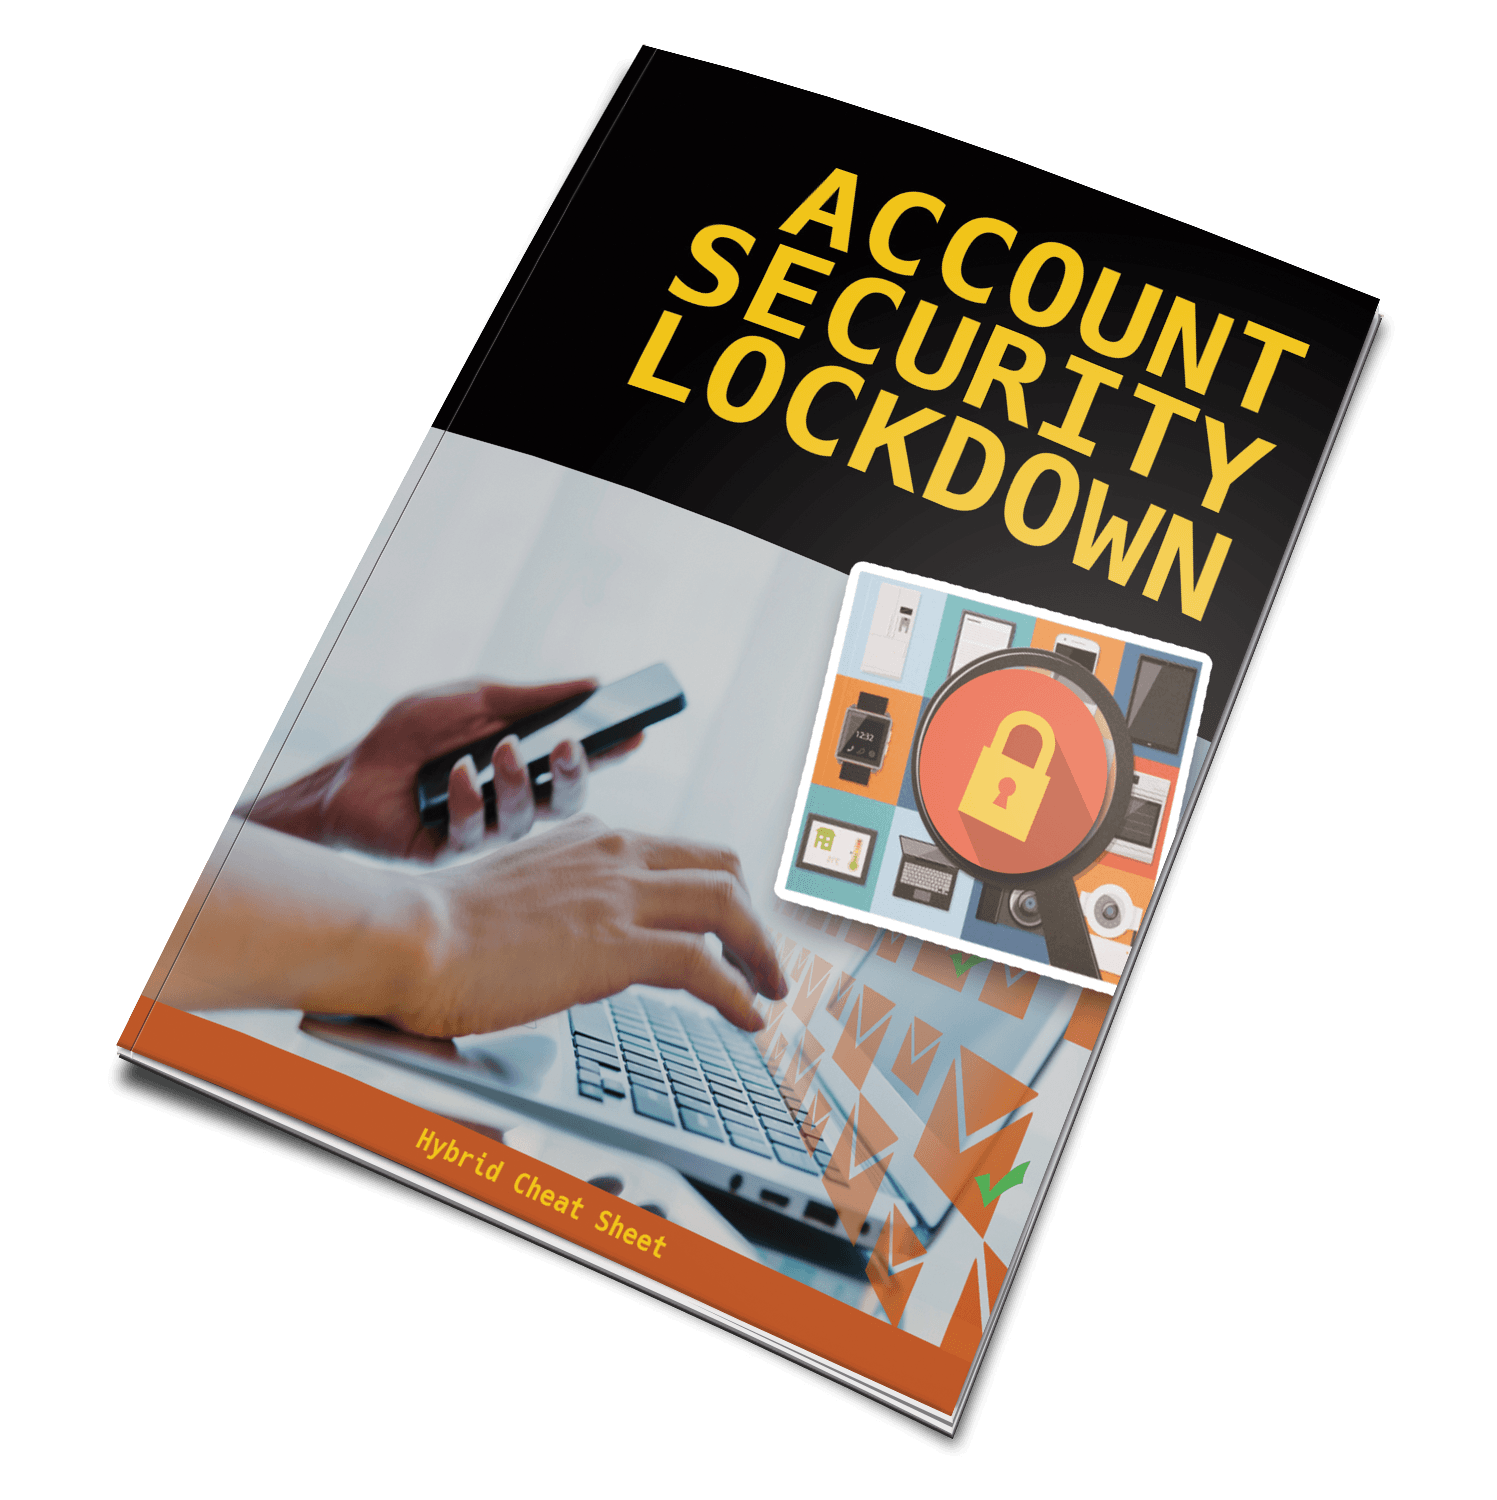 cheatsheet mock - How To Quickly Protect Your Email Account - Security